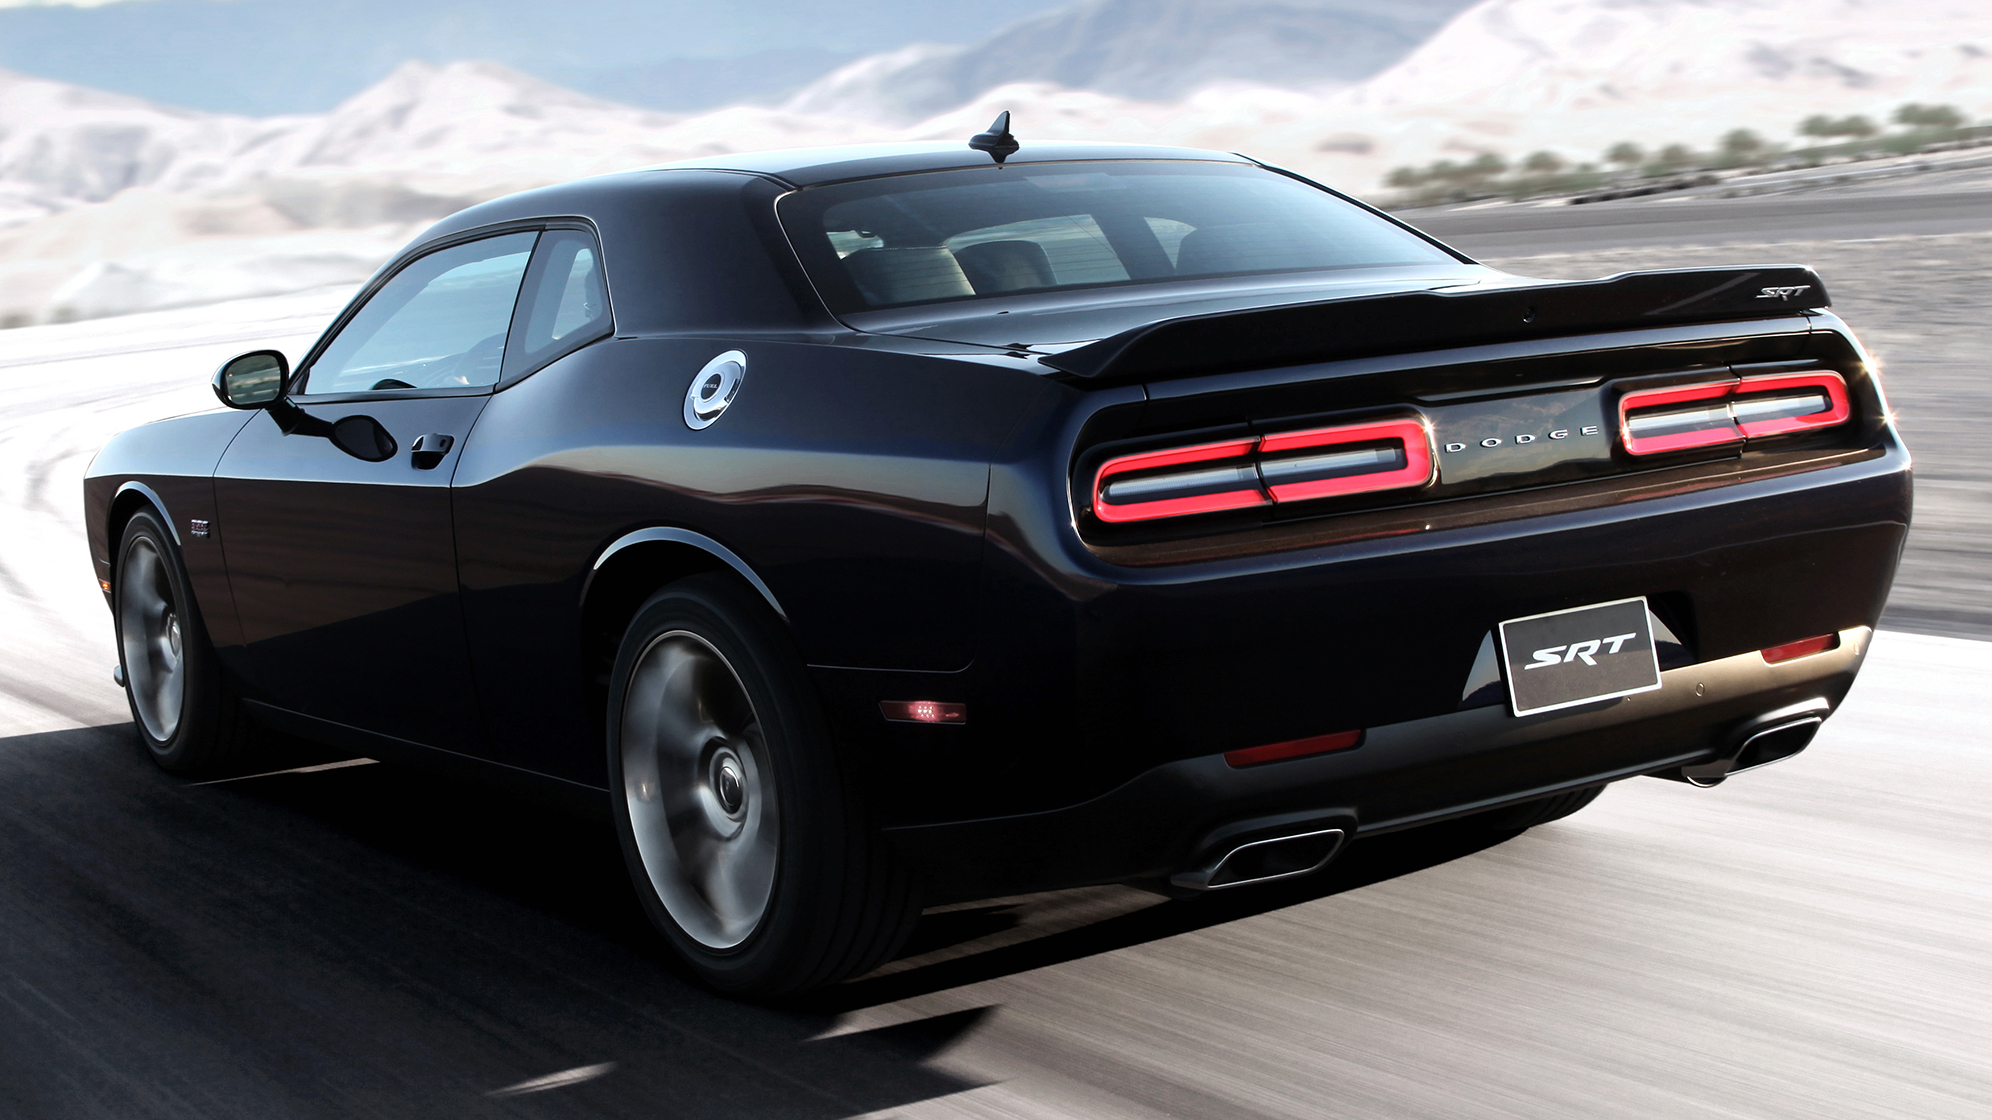 New Dodge Challenger >> Dodge Challenger SRT – new 6.2 V8 mill with 707 hp Paul Tan - Image 248576